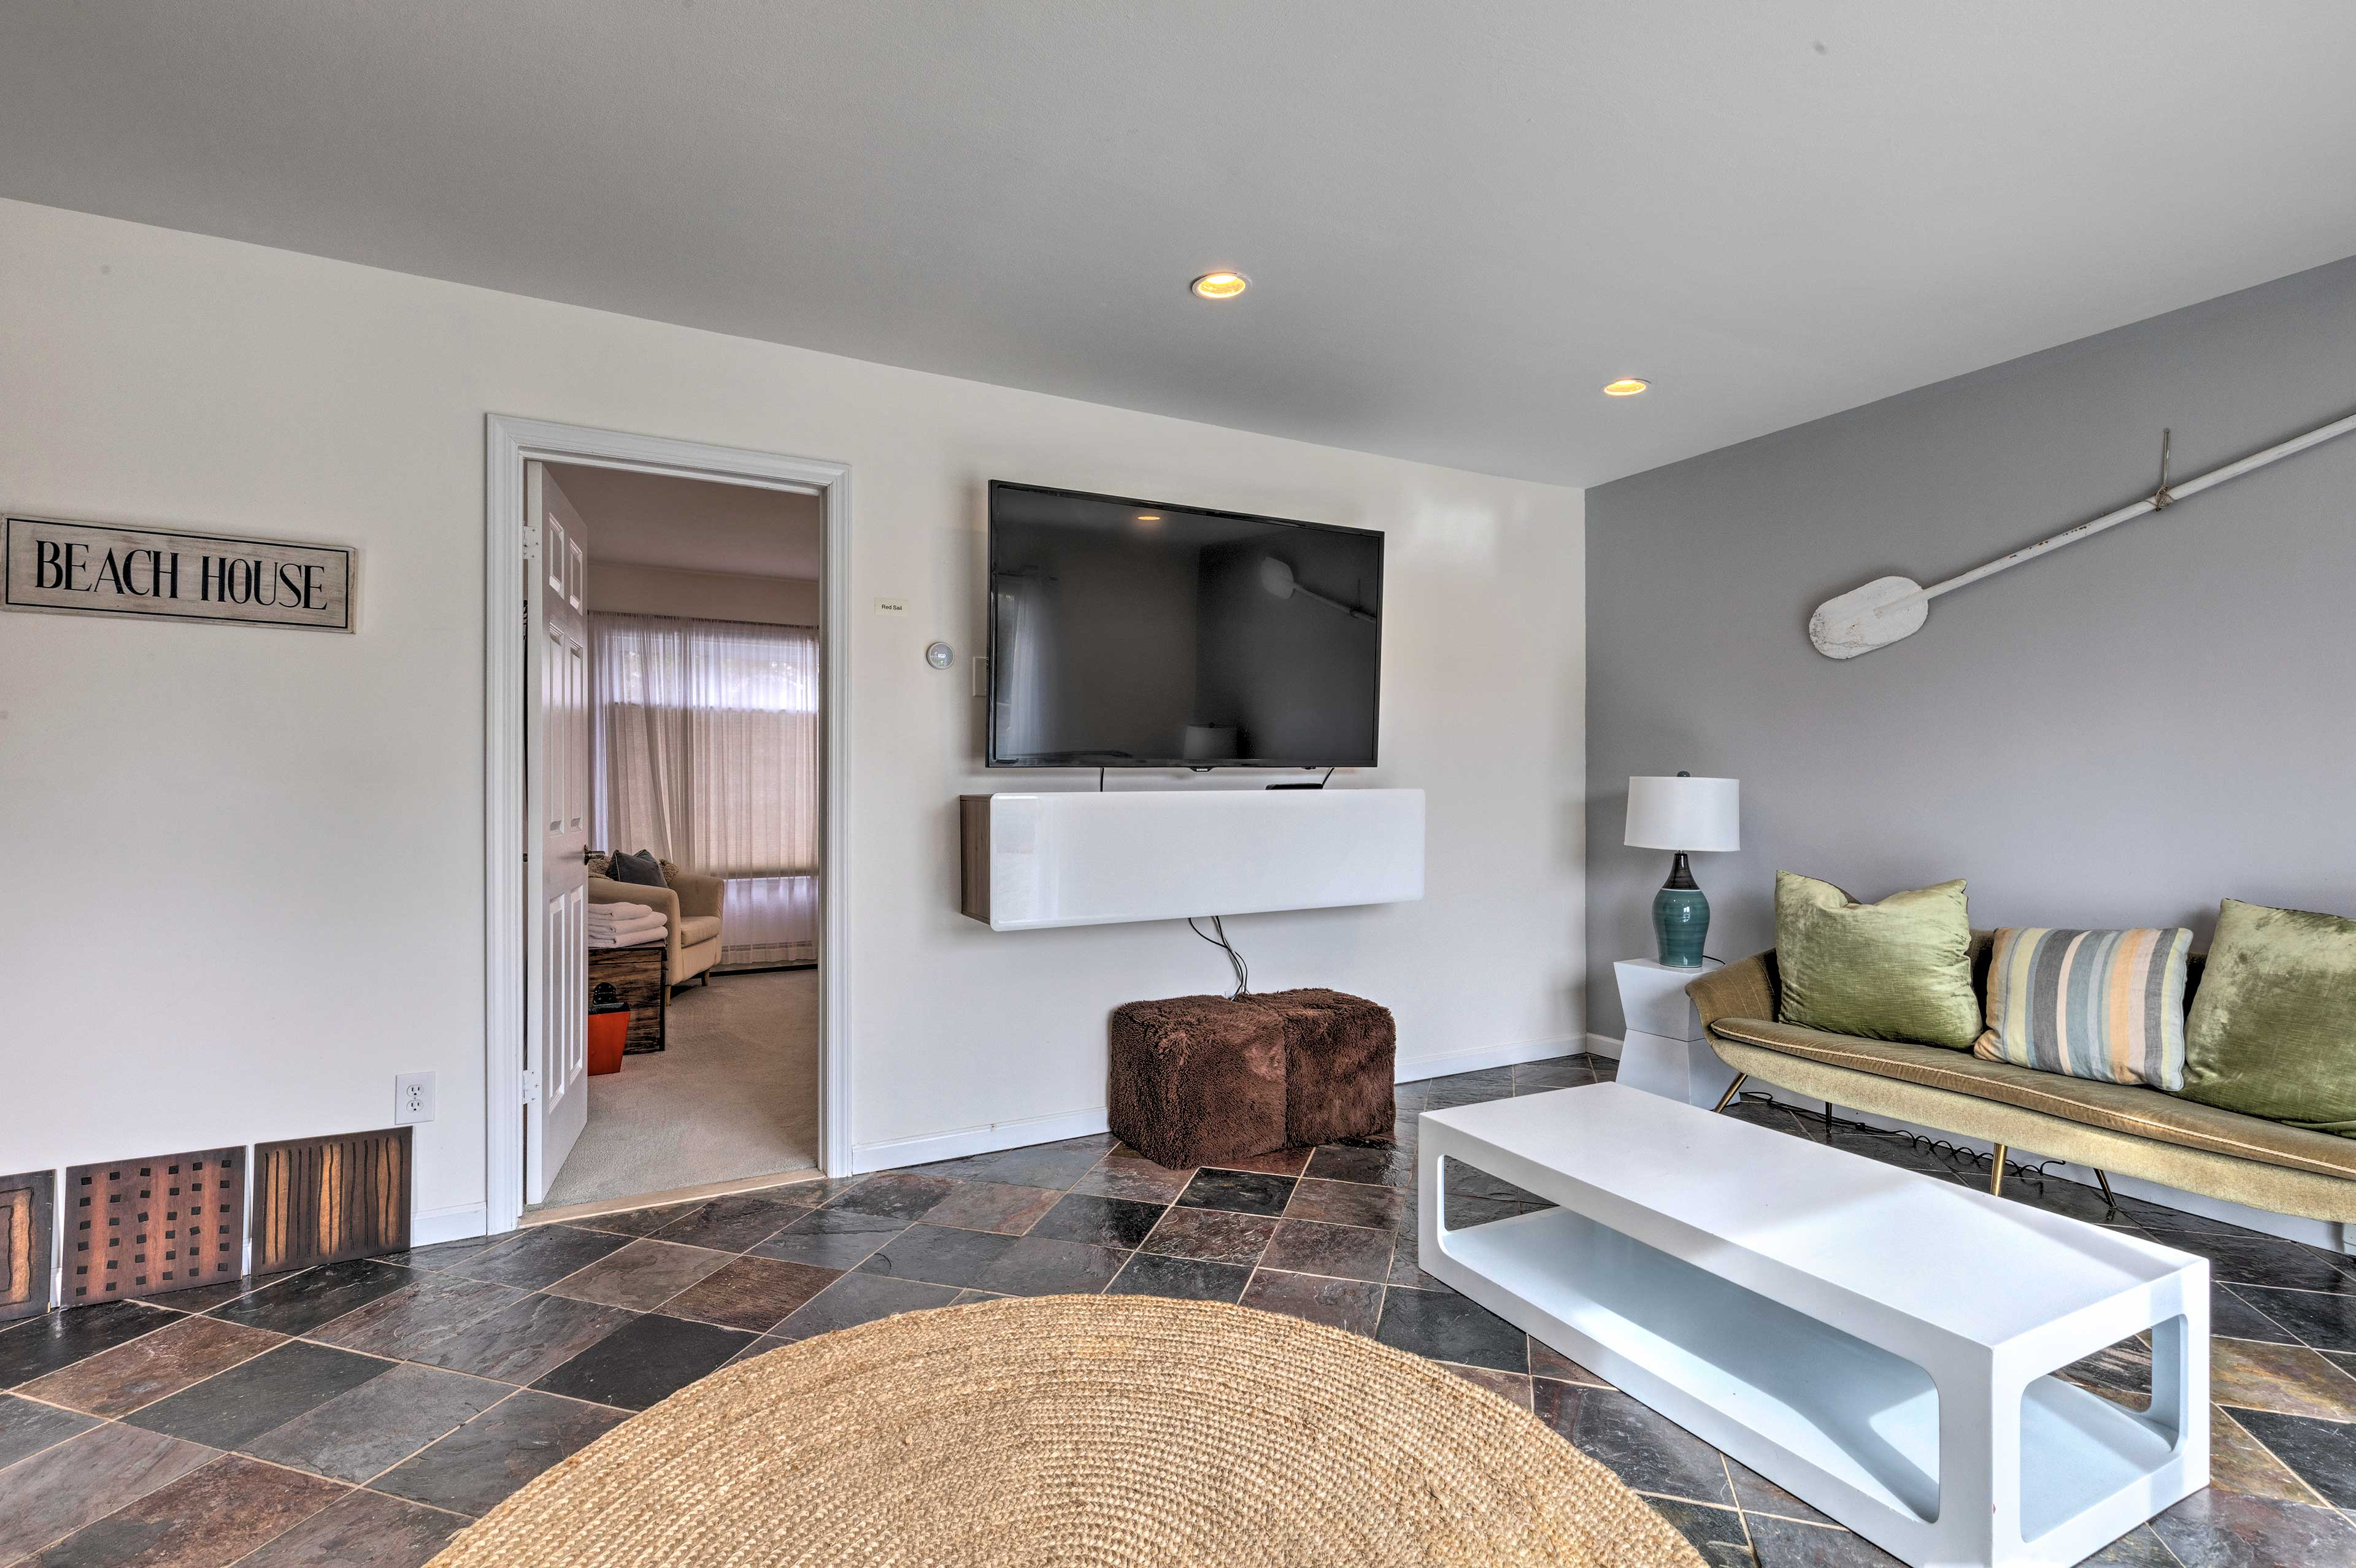 This sitting area offers a cable TV and comfy furniture.